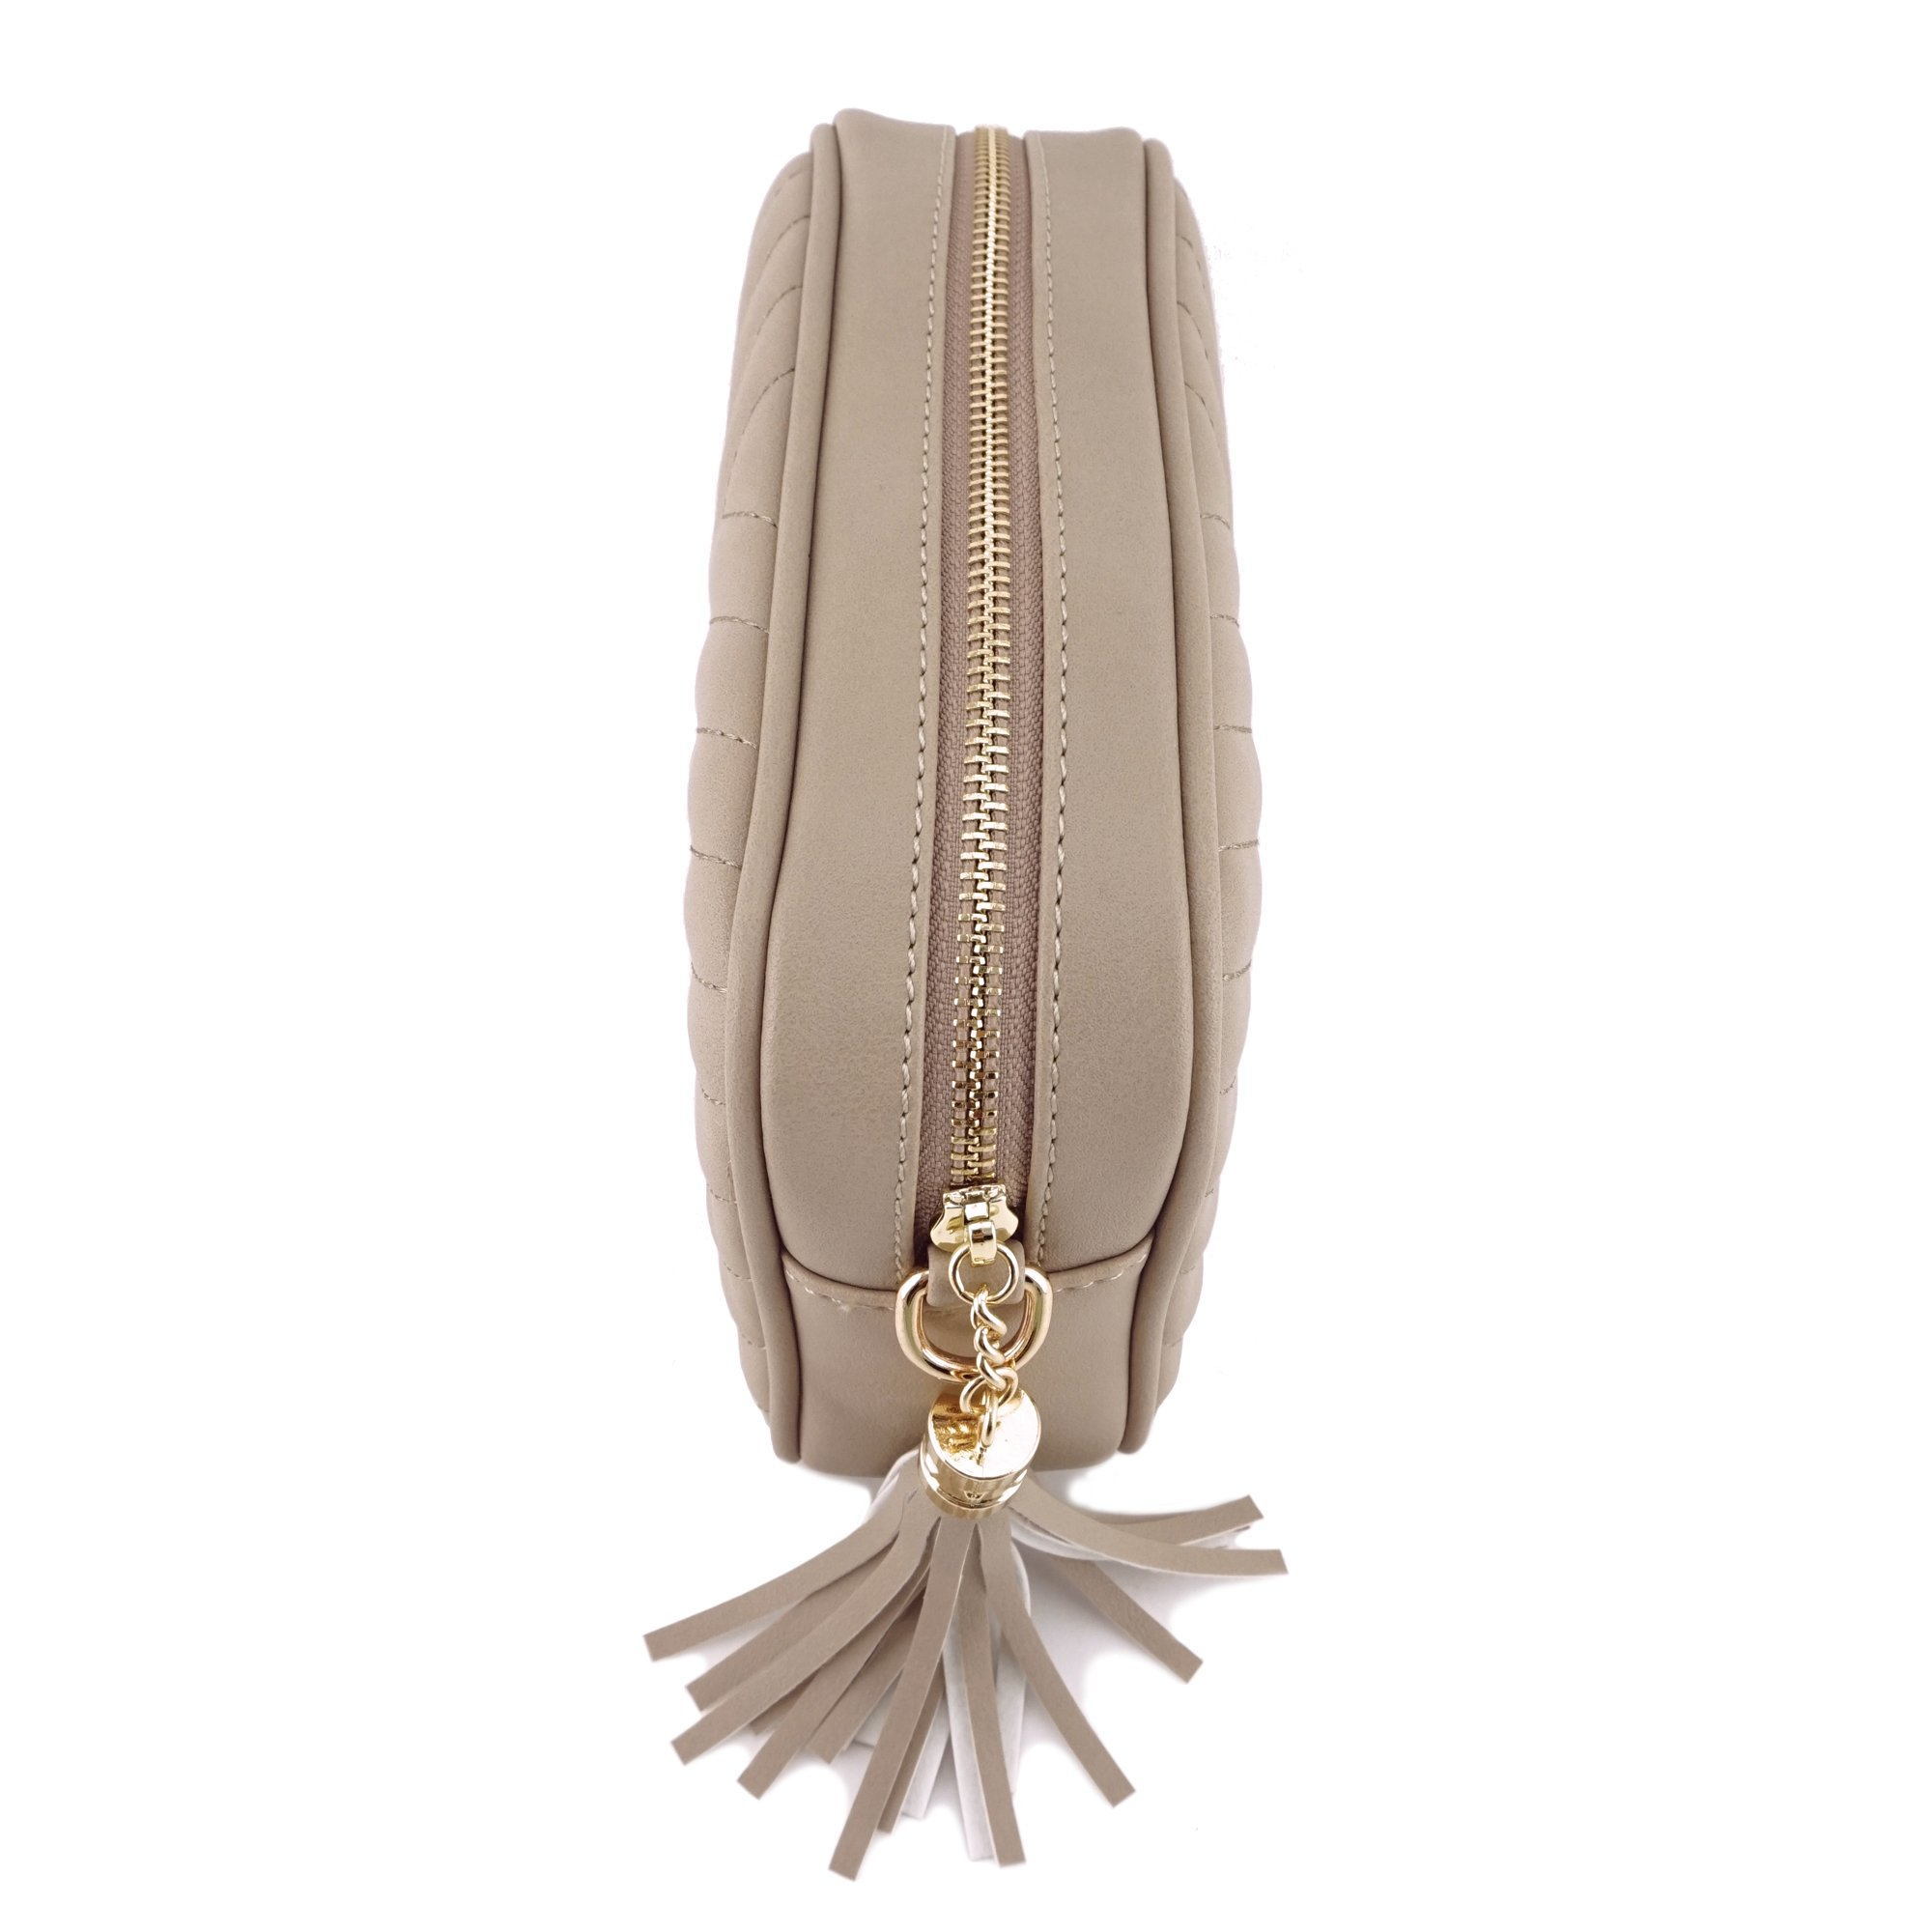 Simple Shoulder Crossbody Bag With Metal Chain Strap And Tassel Top Zipper (Taupe) by 153corp (Image #4)